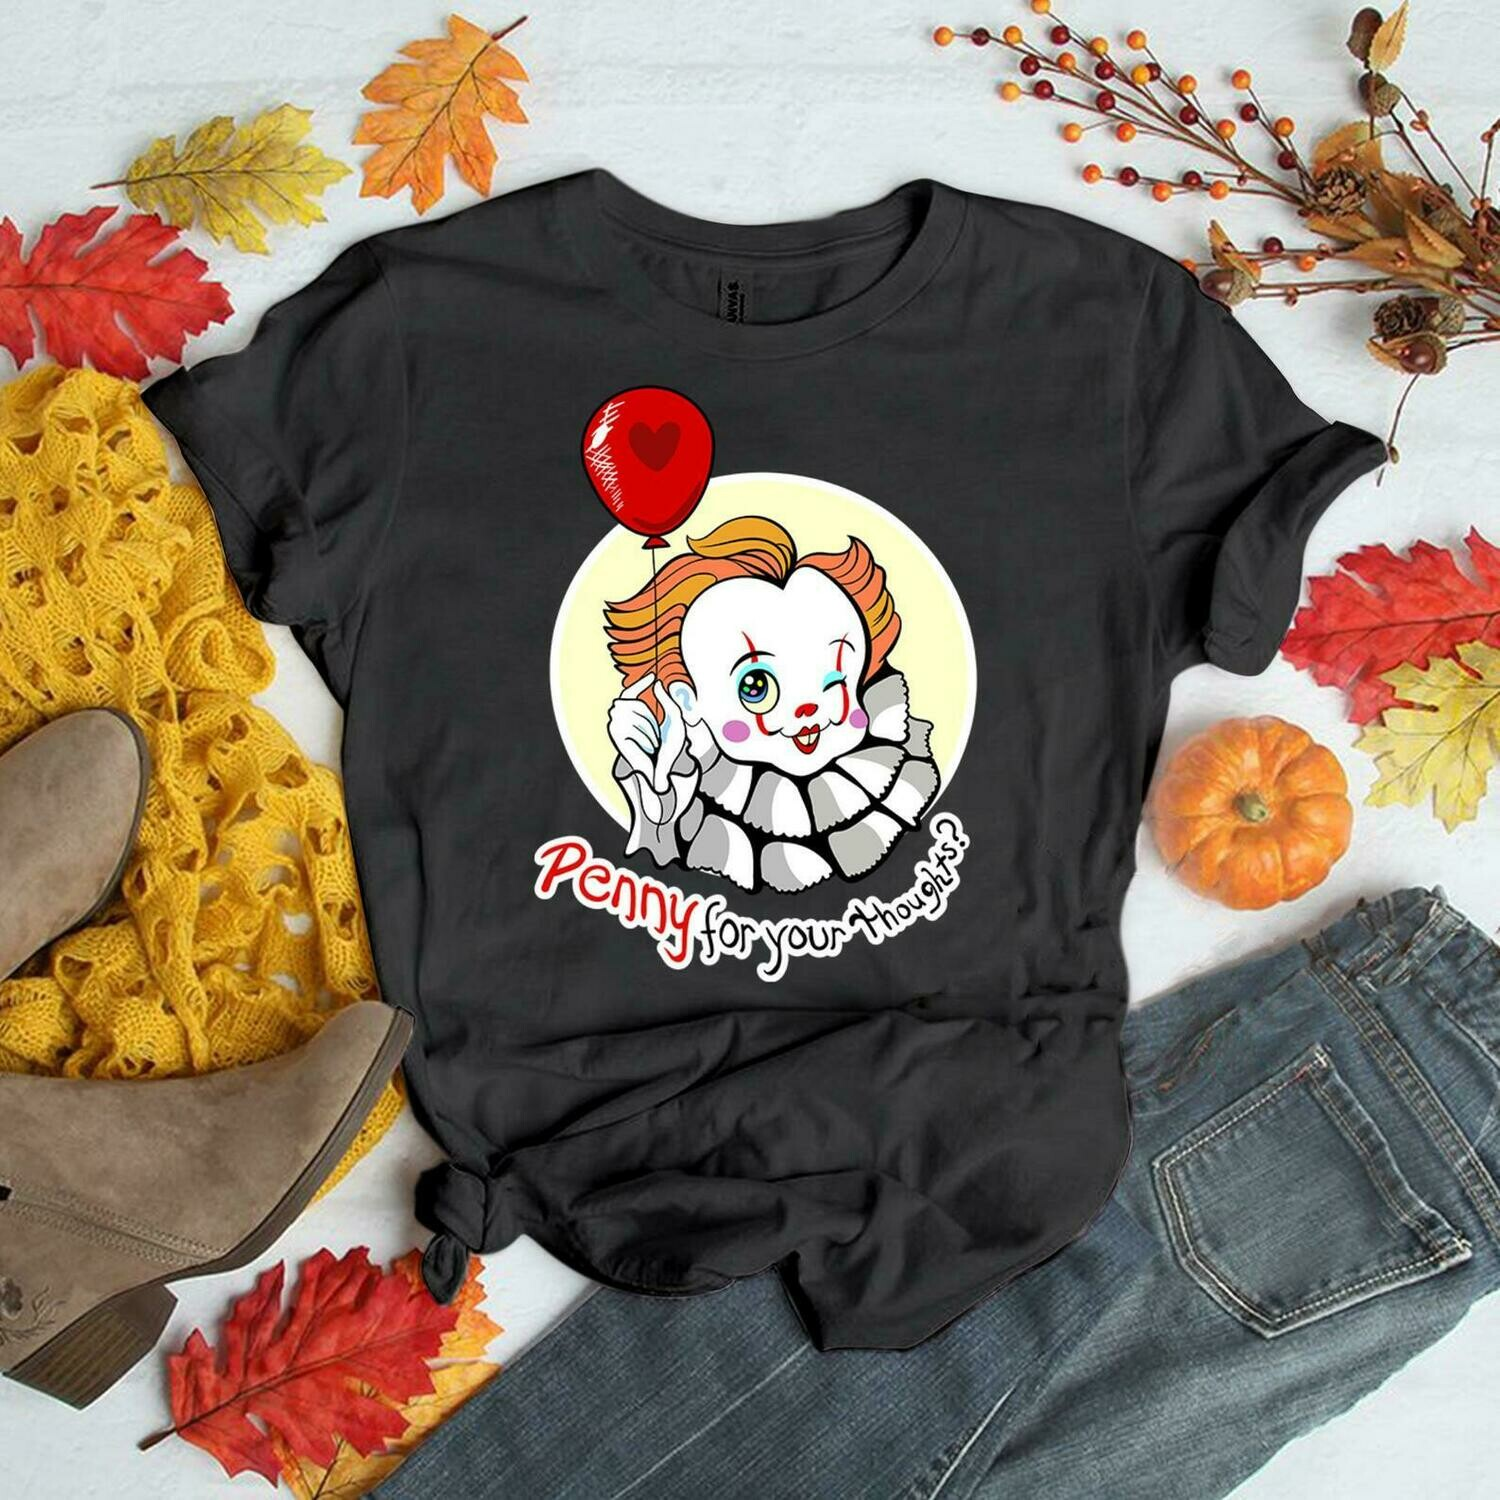 It Pennywise Shirt | Penny For Your Thoughts Shirt | Halloween Shirt, it pennywise, pennywise shirt, itpennywise tshirt, for your thought, halloween shirt, halloween tshirt, halloween shirts